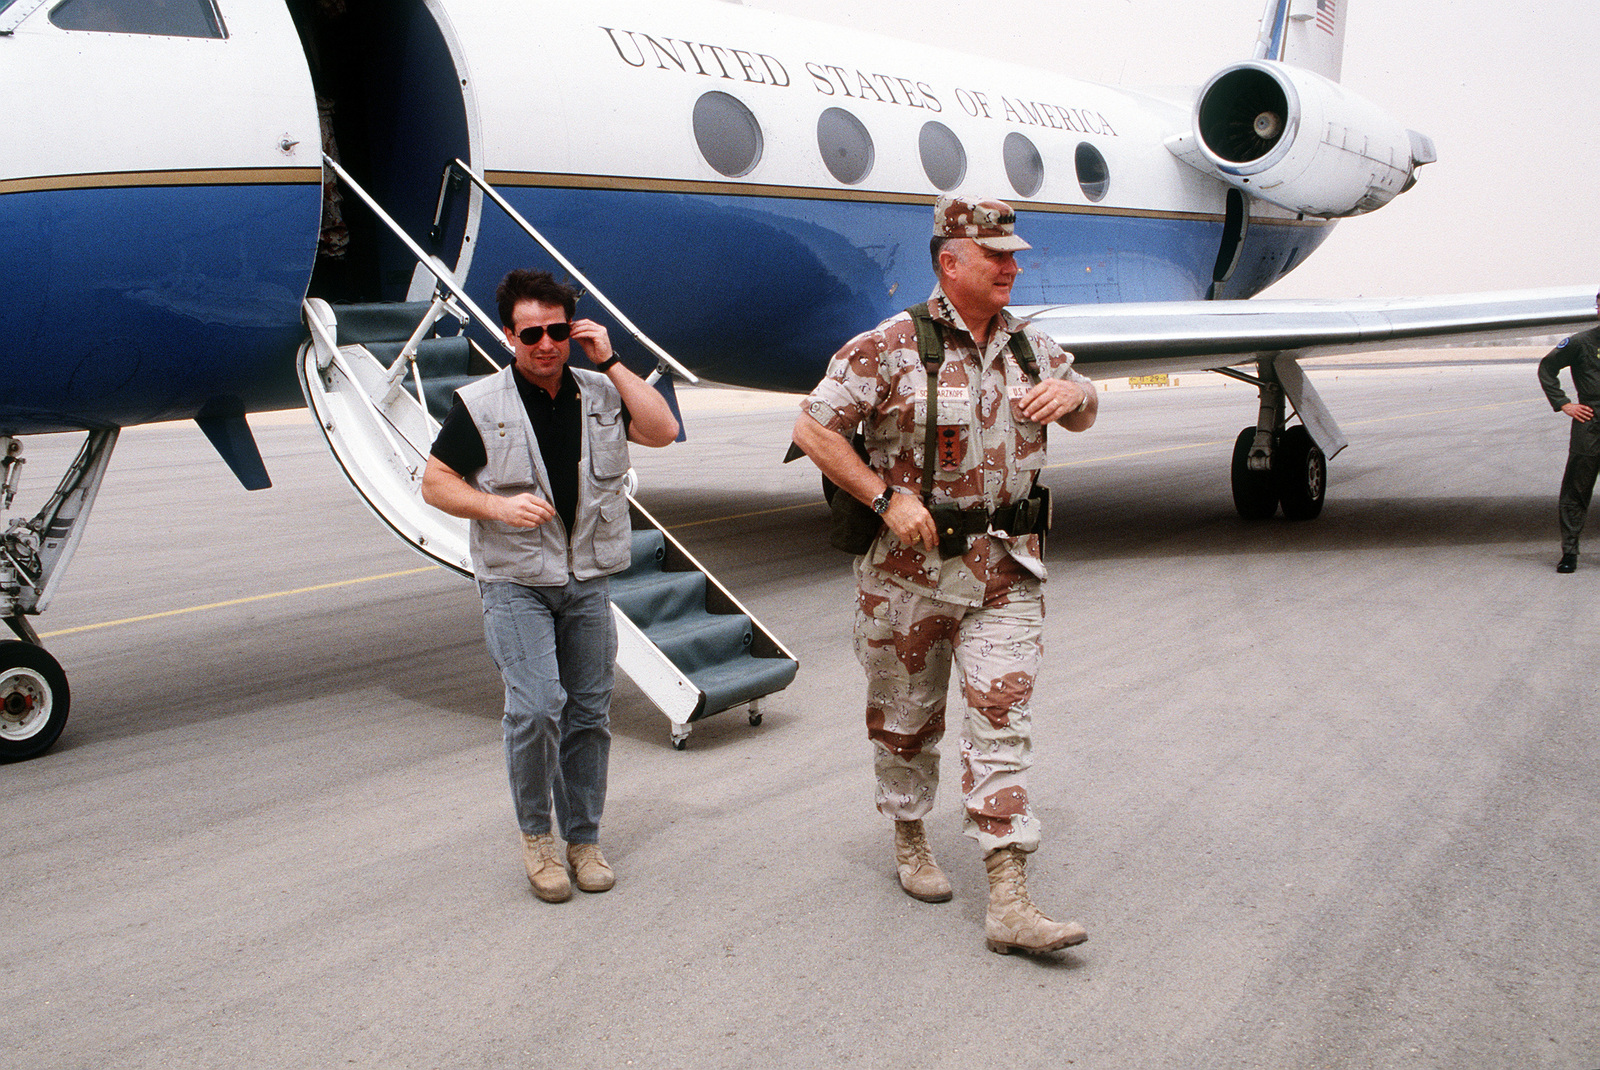 GEN. Norman Schwarzkopf, commander-in-chief, U.S. Central Command, disembarks from a C-20A Gulfstream aircraft as he arrives at the XVIII Airborne Corps base of operations at Rahfa Airport to examine Iraqi aircraft captured during Operation Desert Storm.